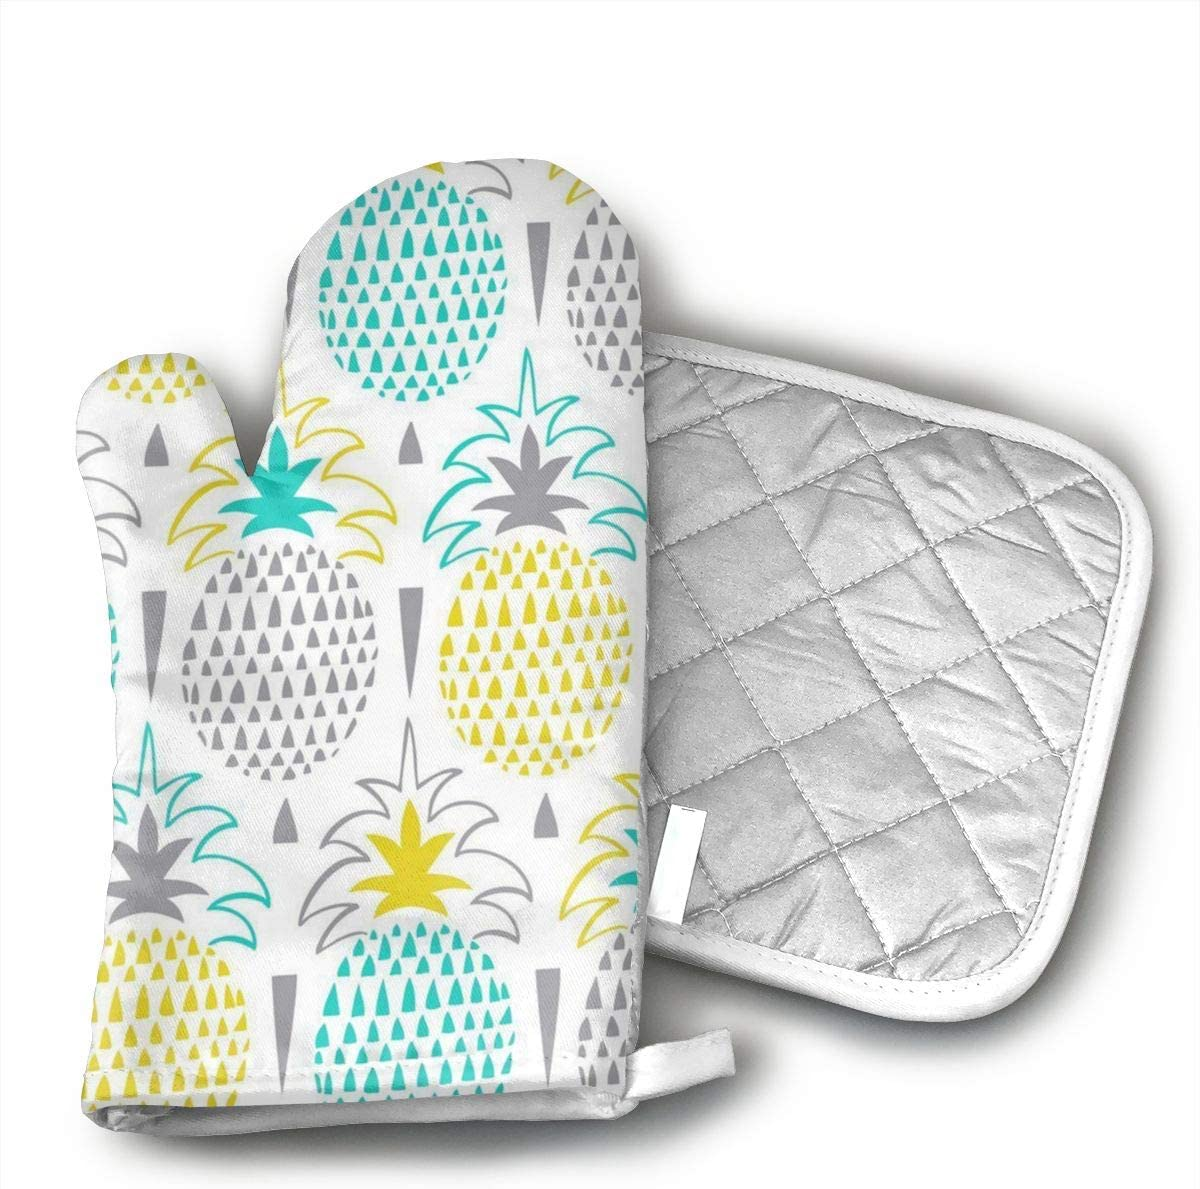 Sjiwqoj8 Pretty Pineapple Kitchen Oven Mitts,Oven Mitts and Pot Holders,Heat Resistant with Quilted Cotton Lining,Cooking,Baking,Grilling,Barbecue